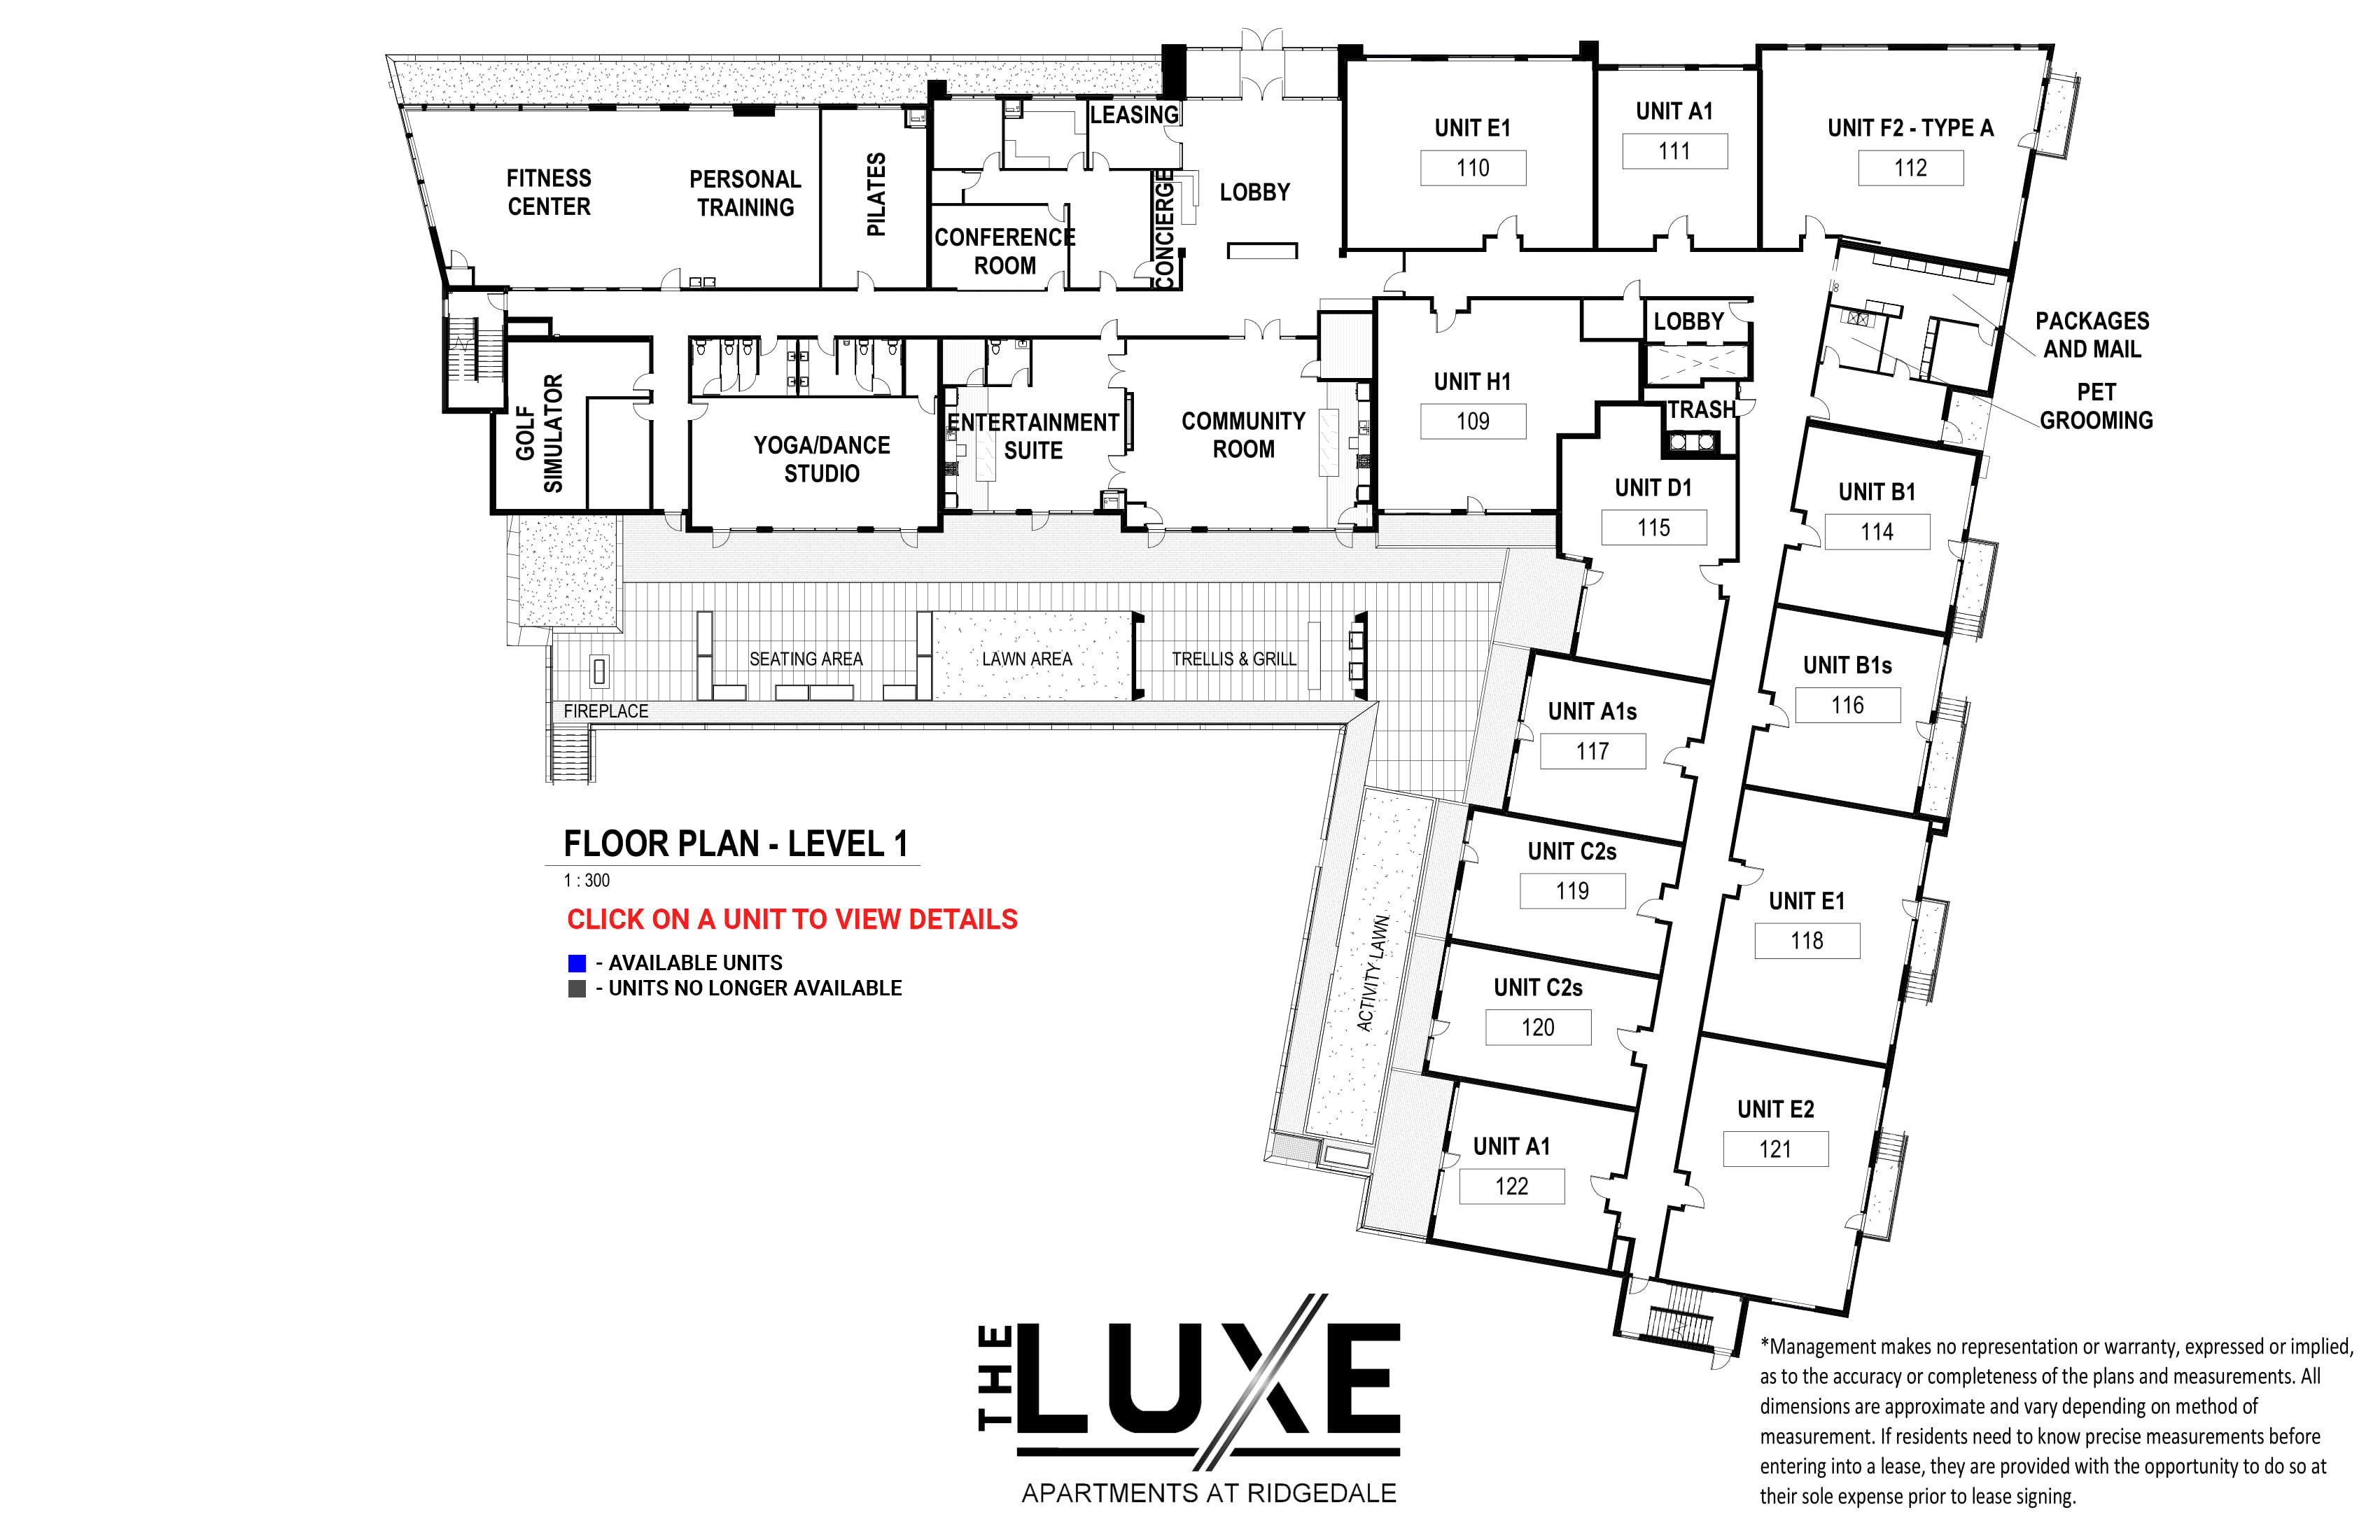 Floor Plan - Level 1